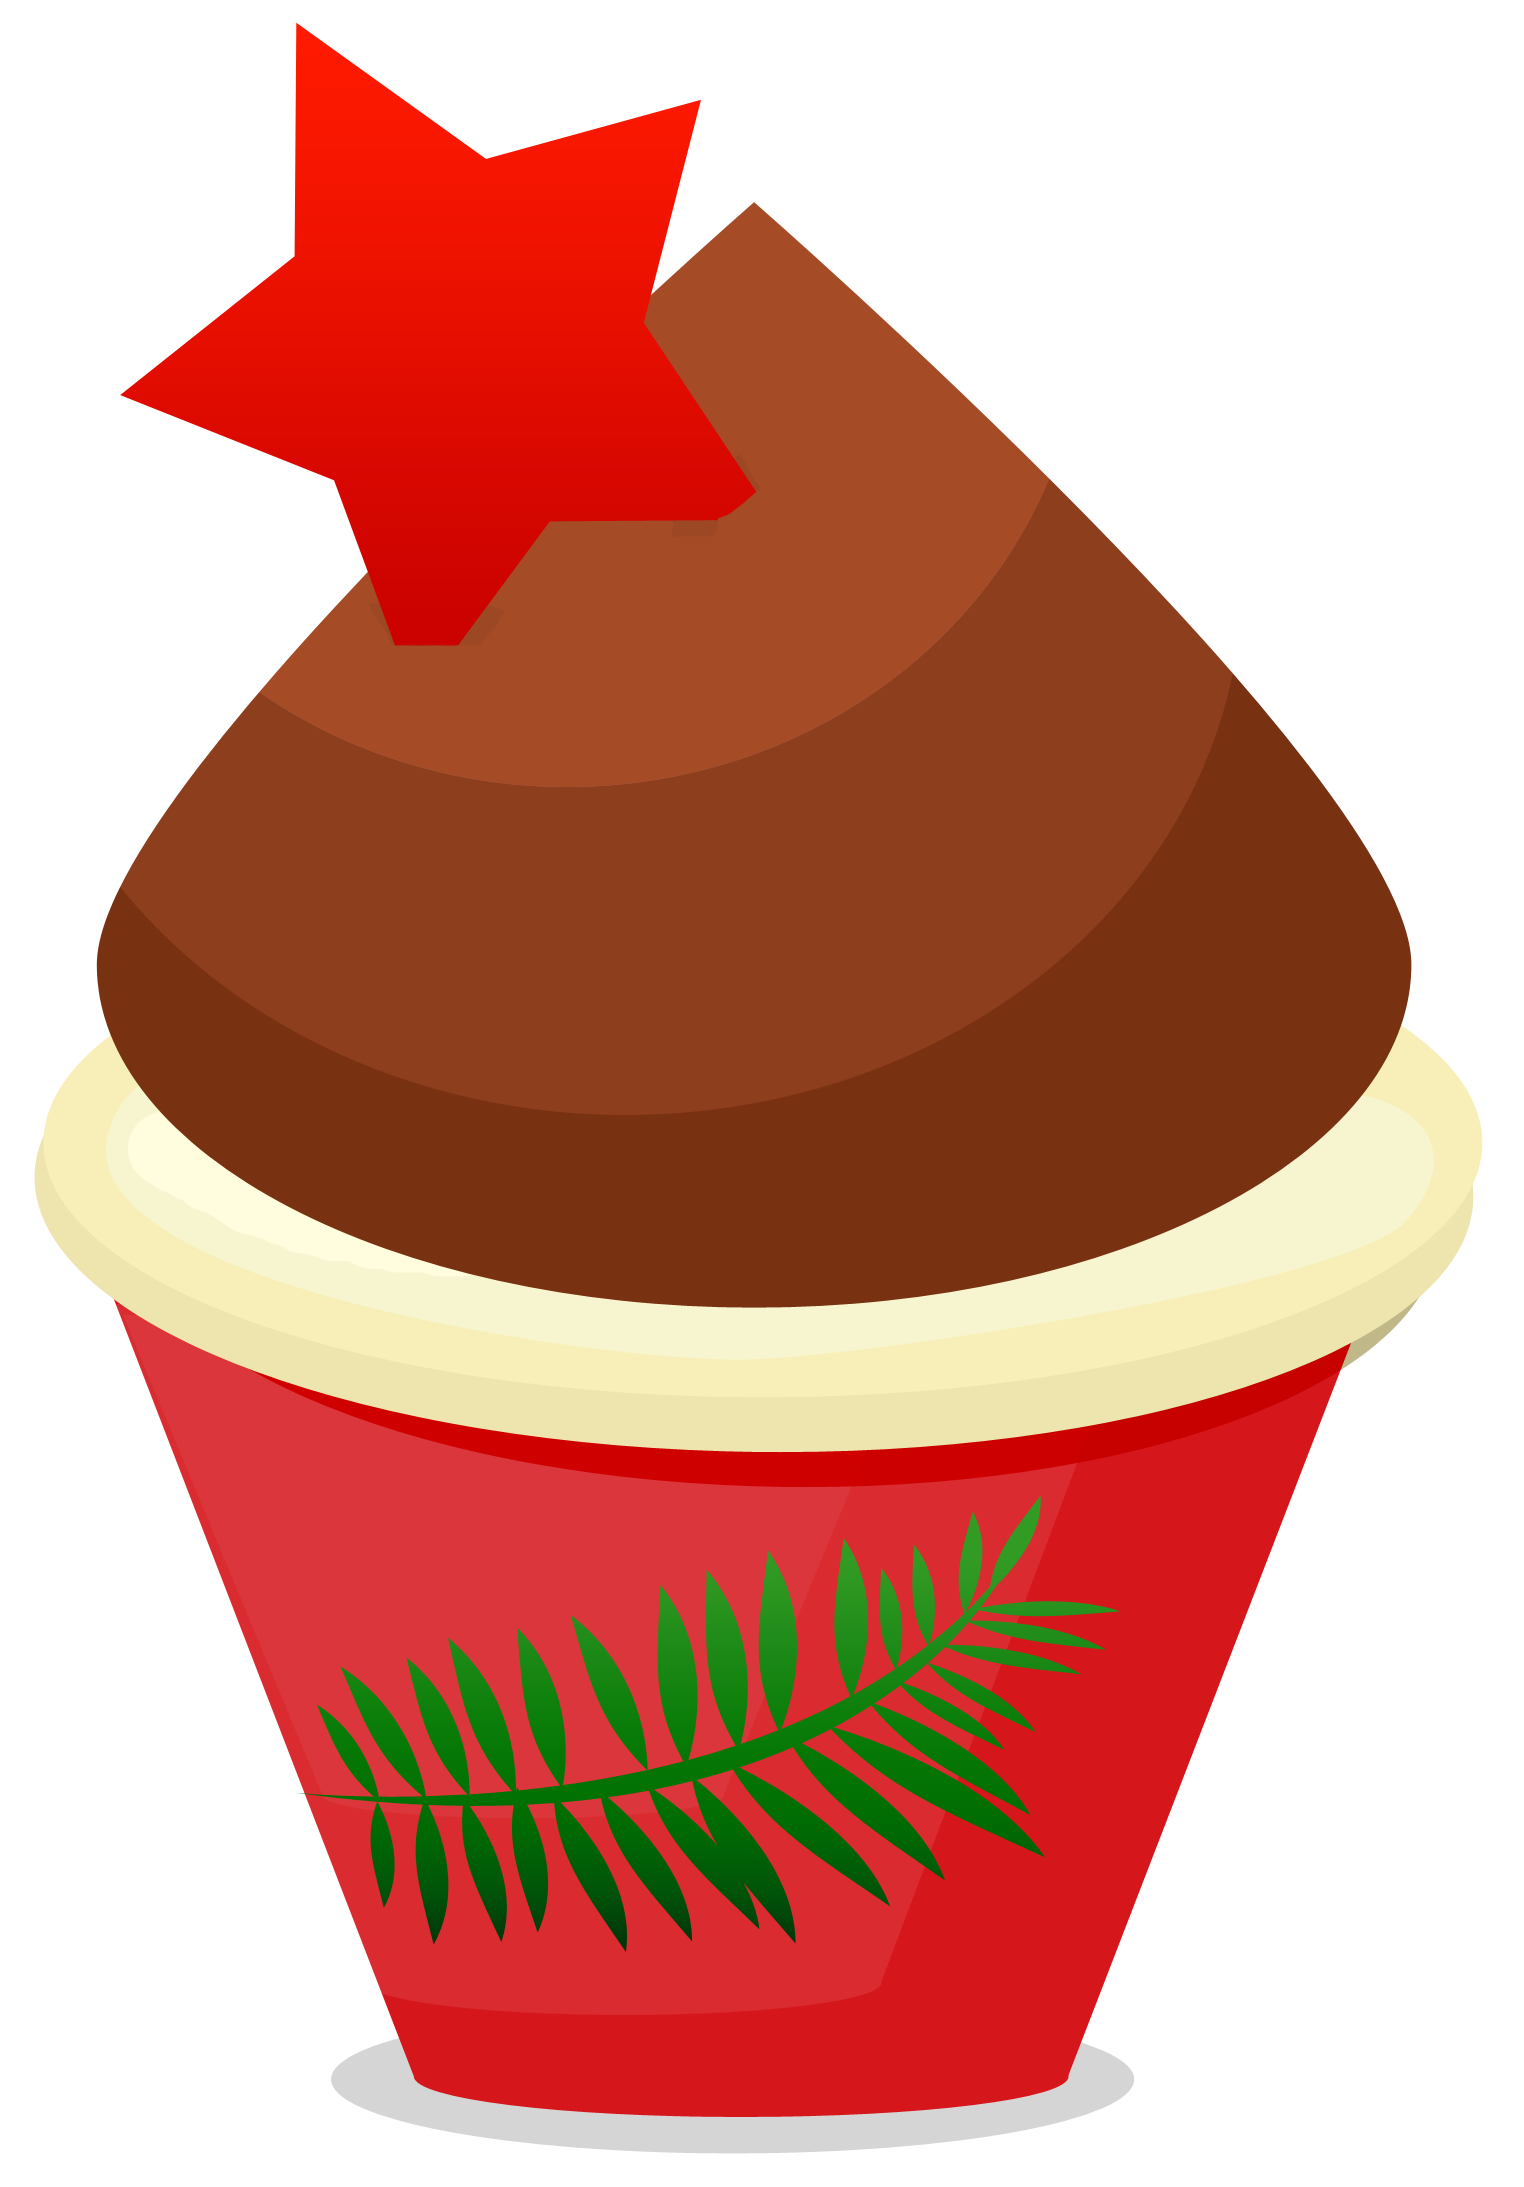 Turkey cupcake clipart graphic freeuse download Christmas Cupcake Clipart - Clipart Kid graphic freeuse download